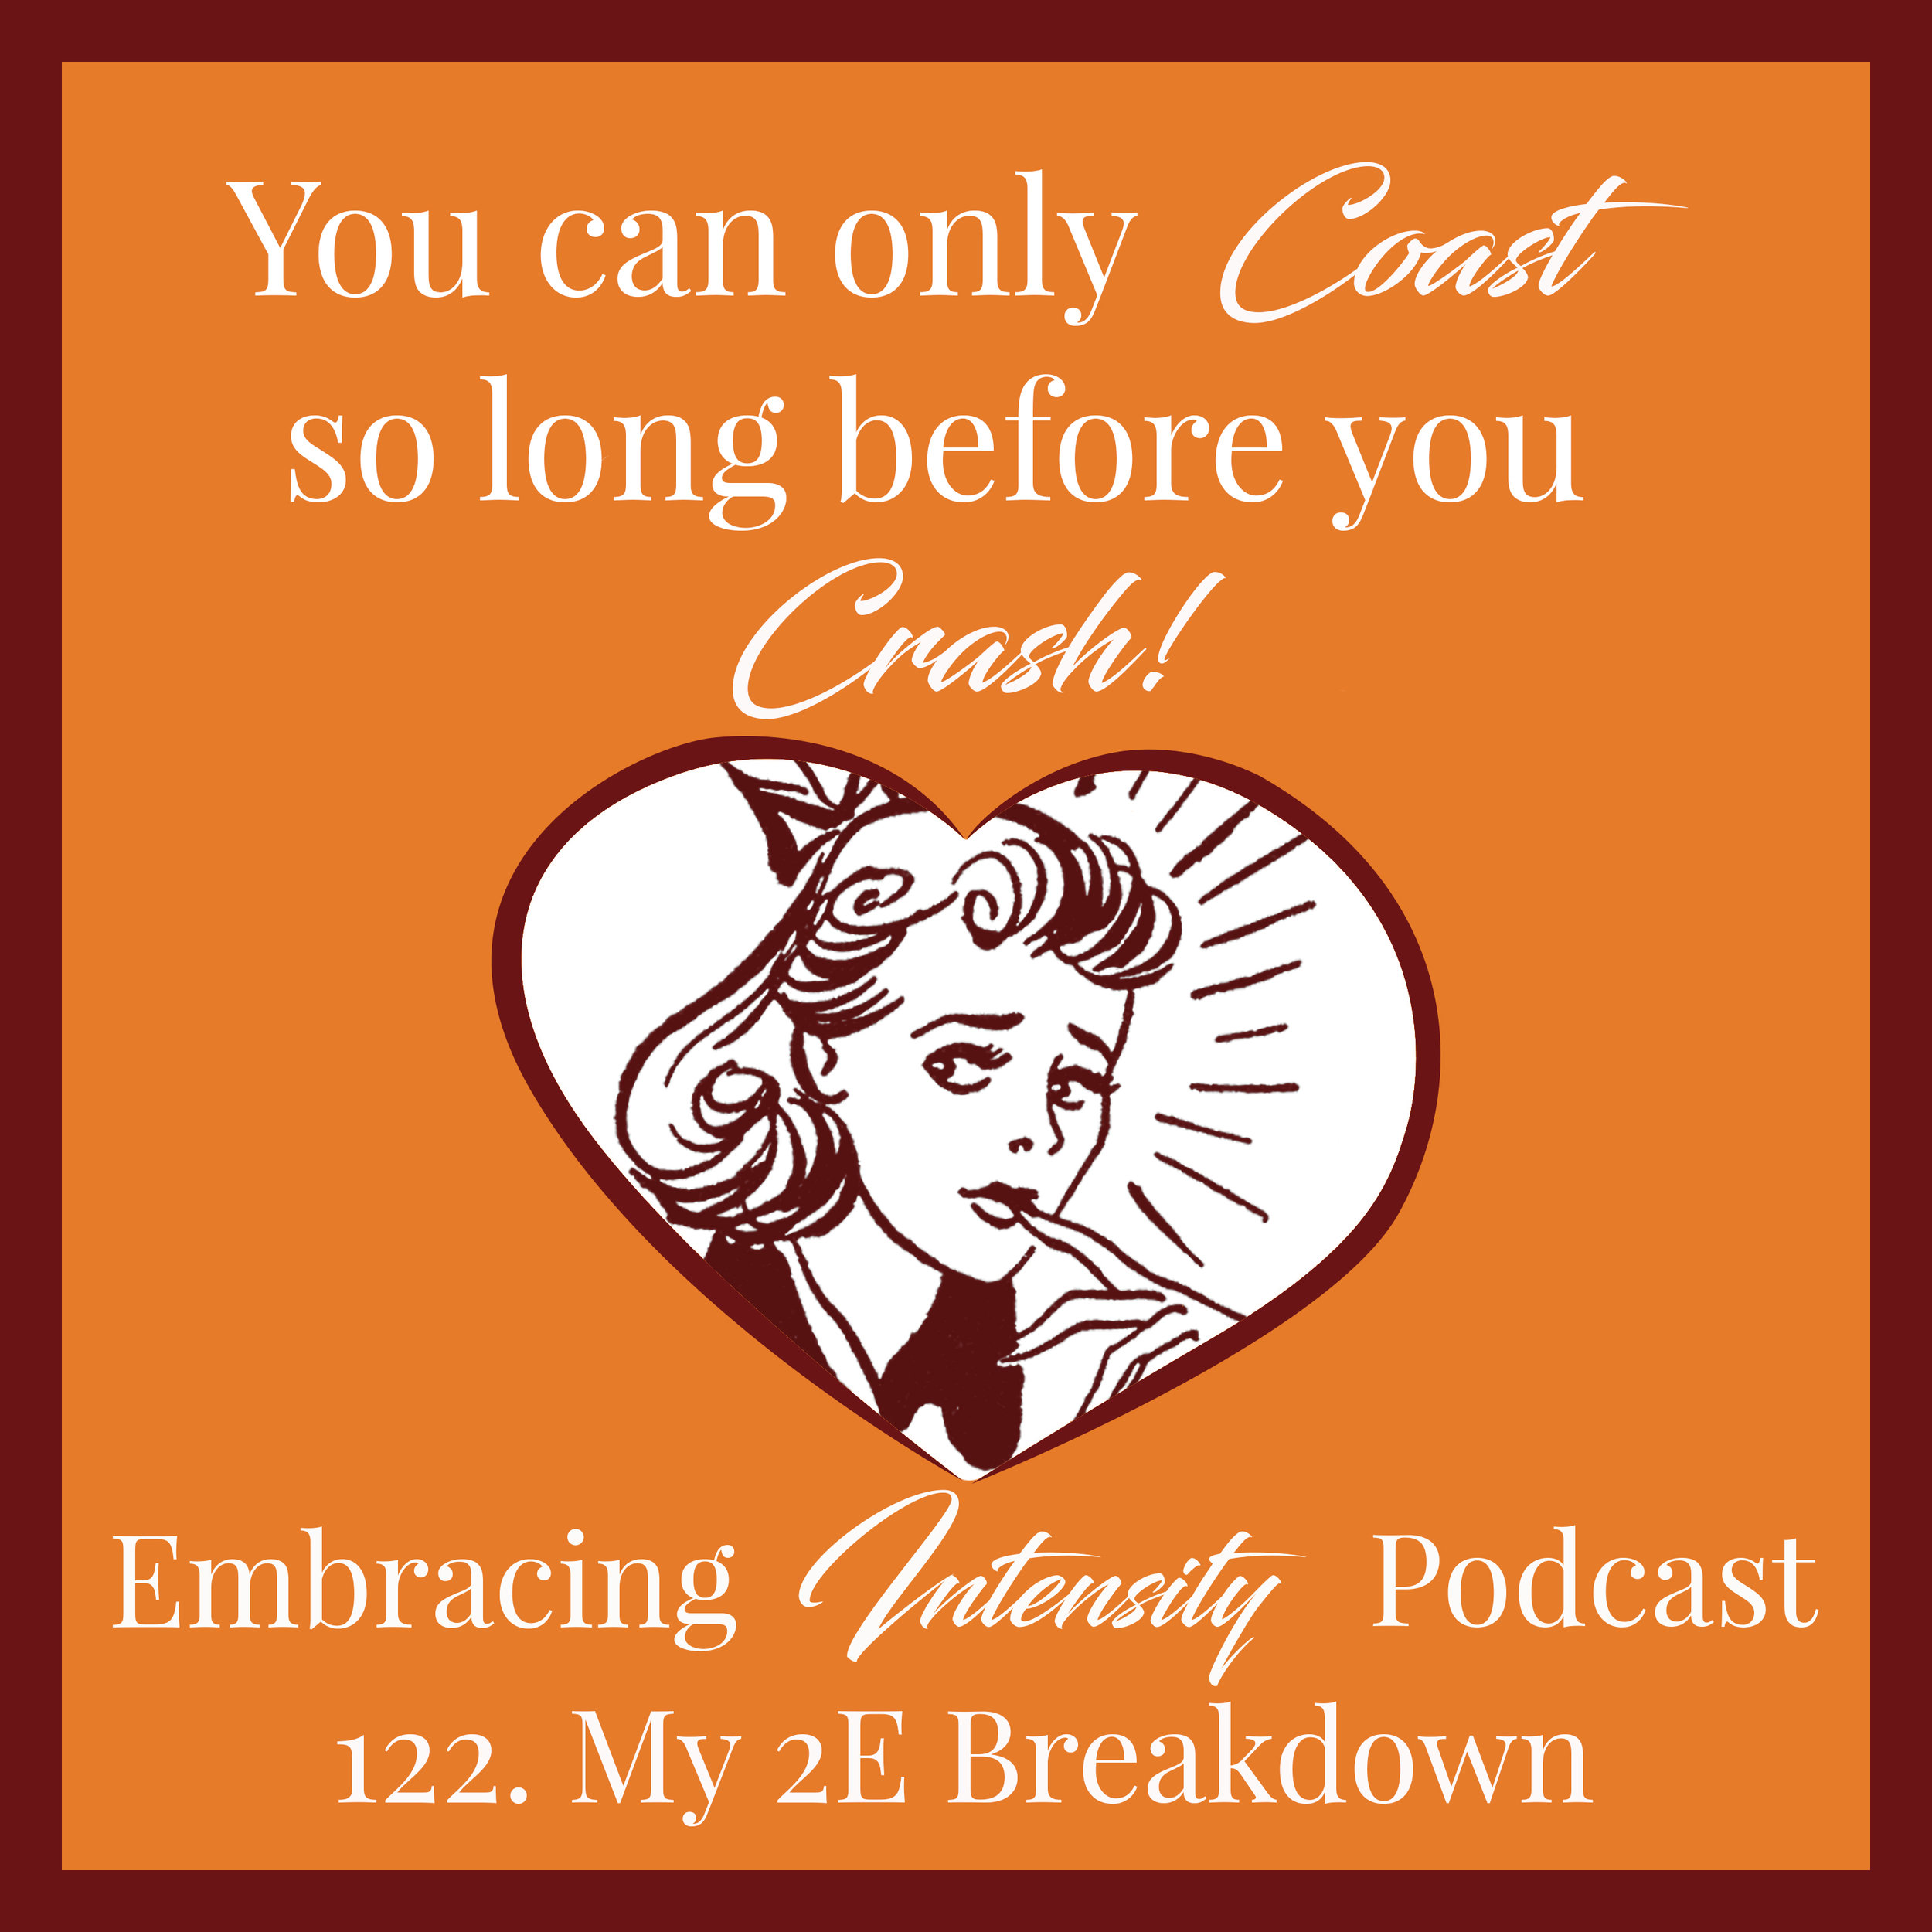 Embracing Intensity Podcast: My 2E Breakdown